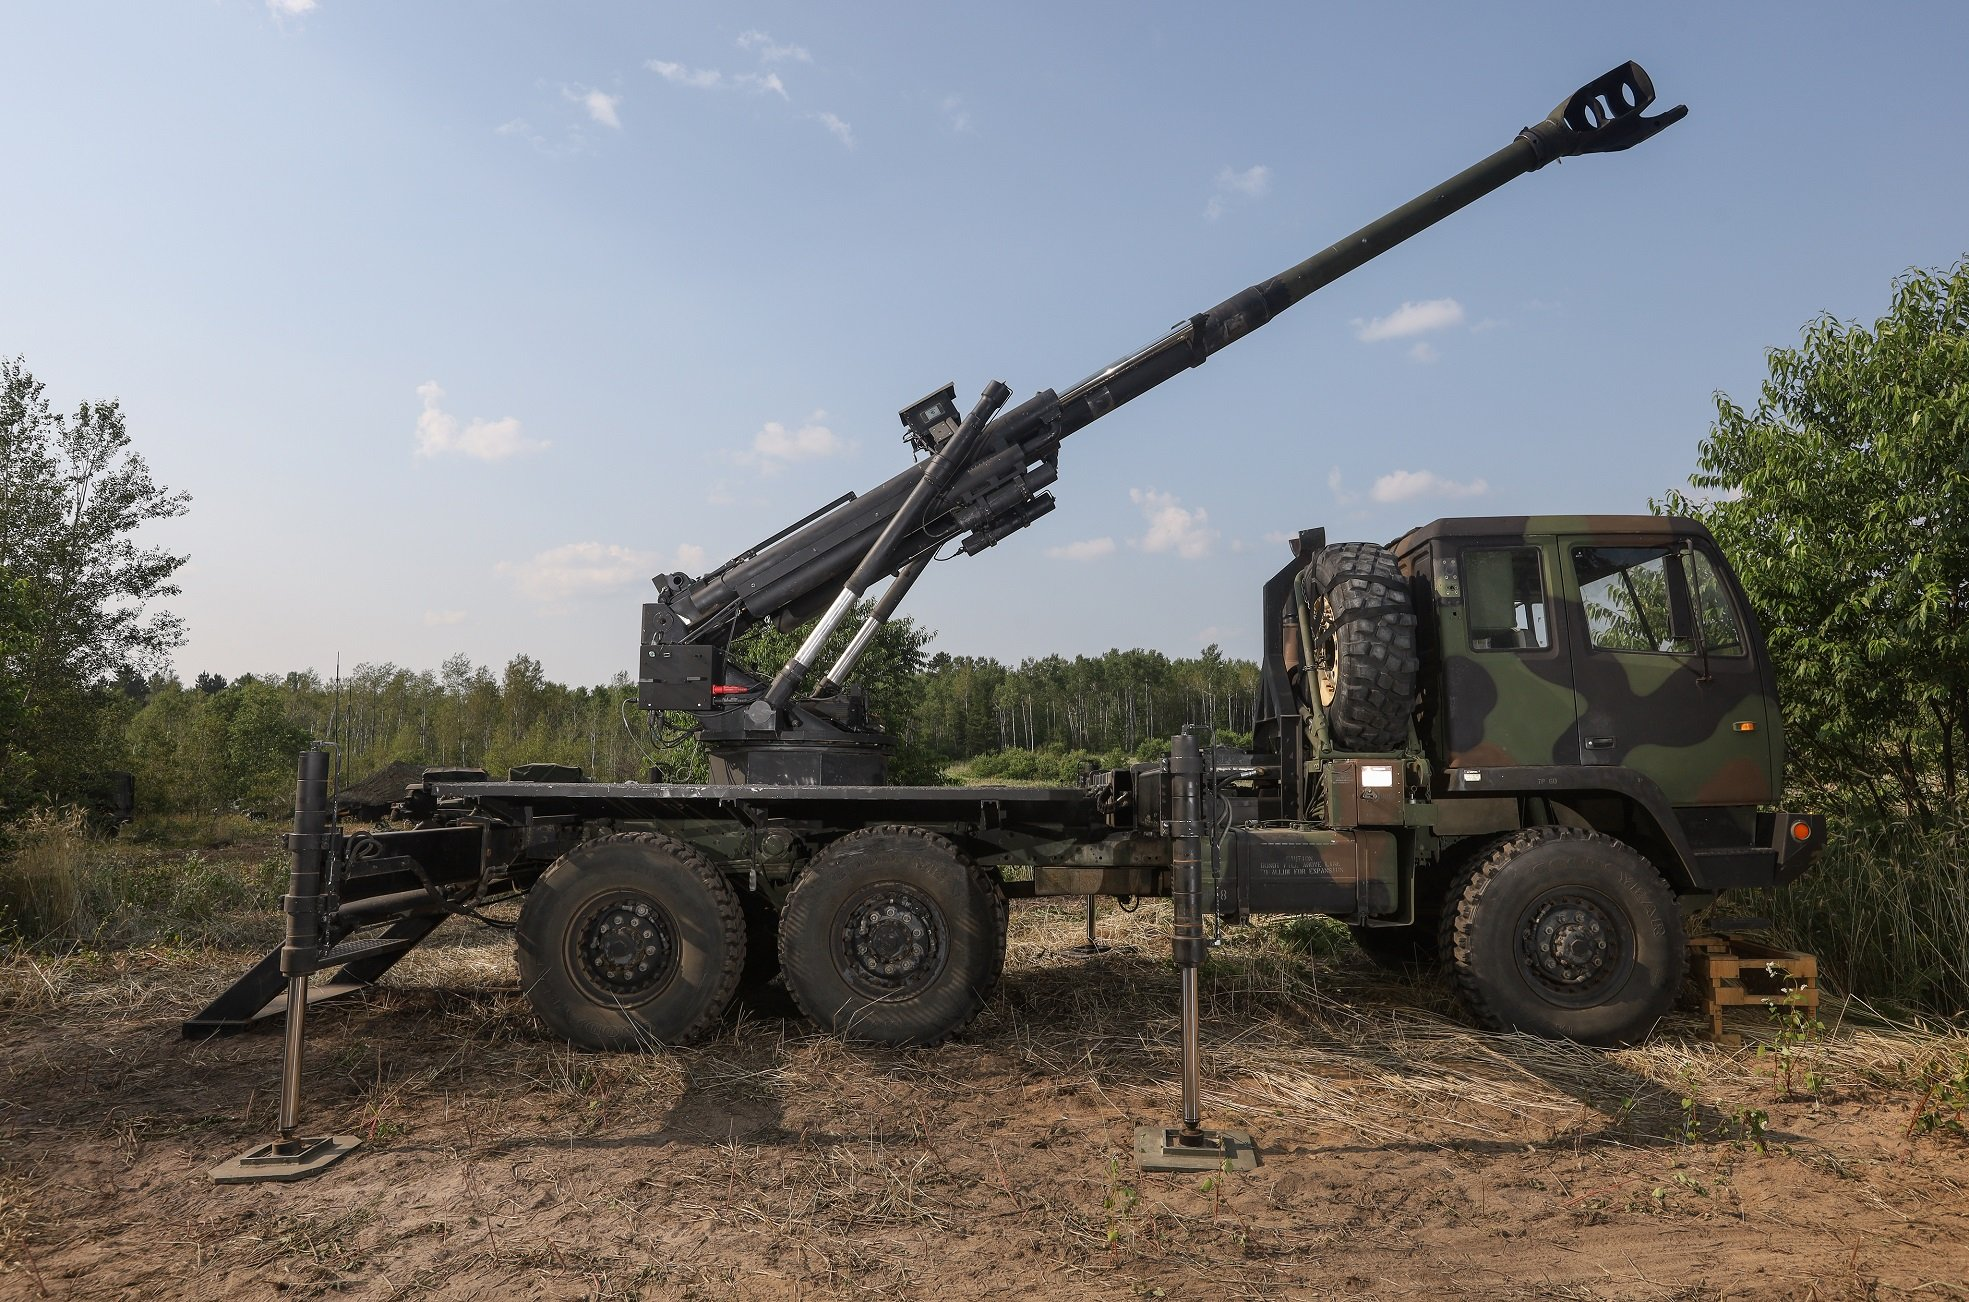 U.S. Army wants new 155mm artillery system